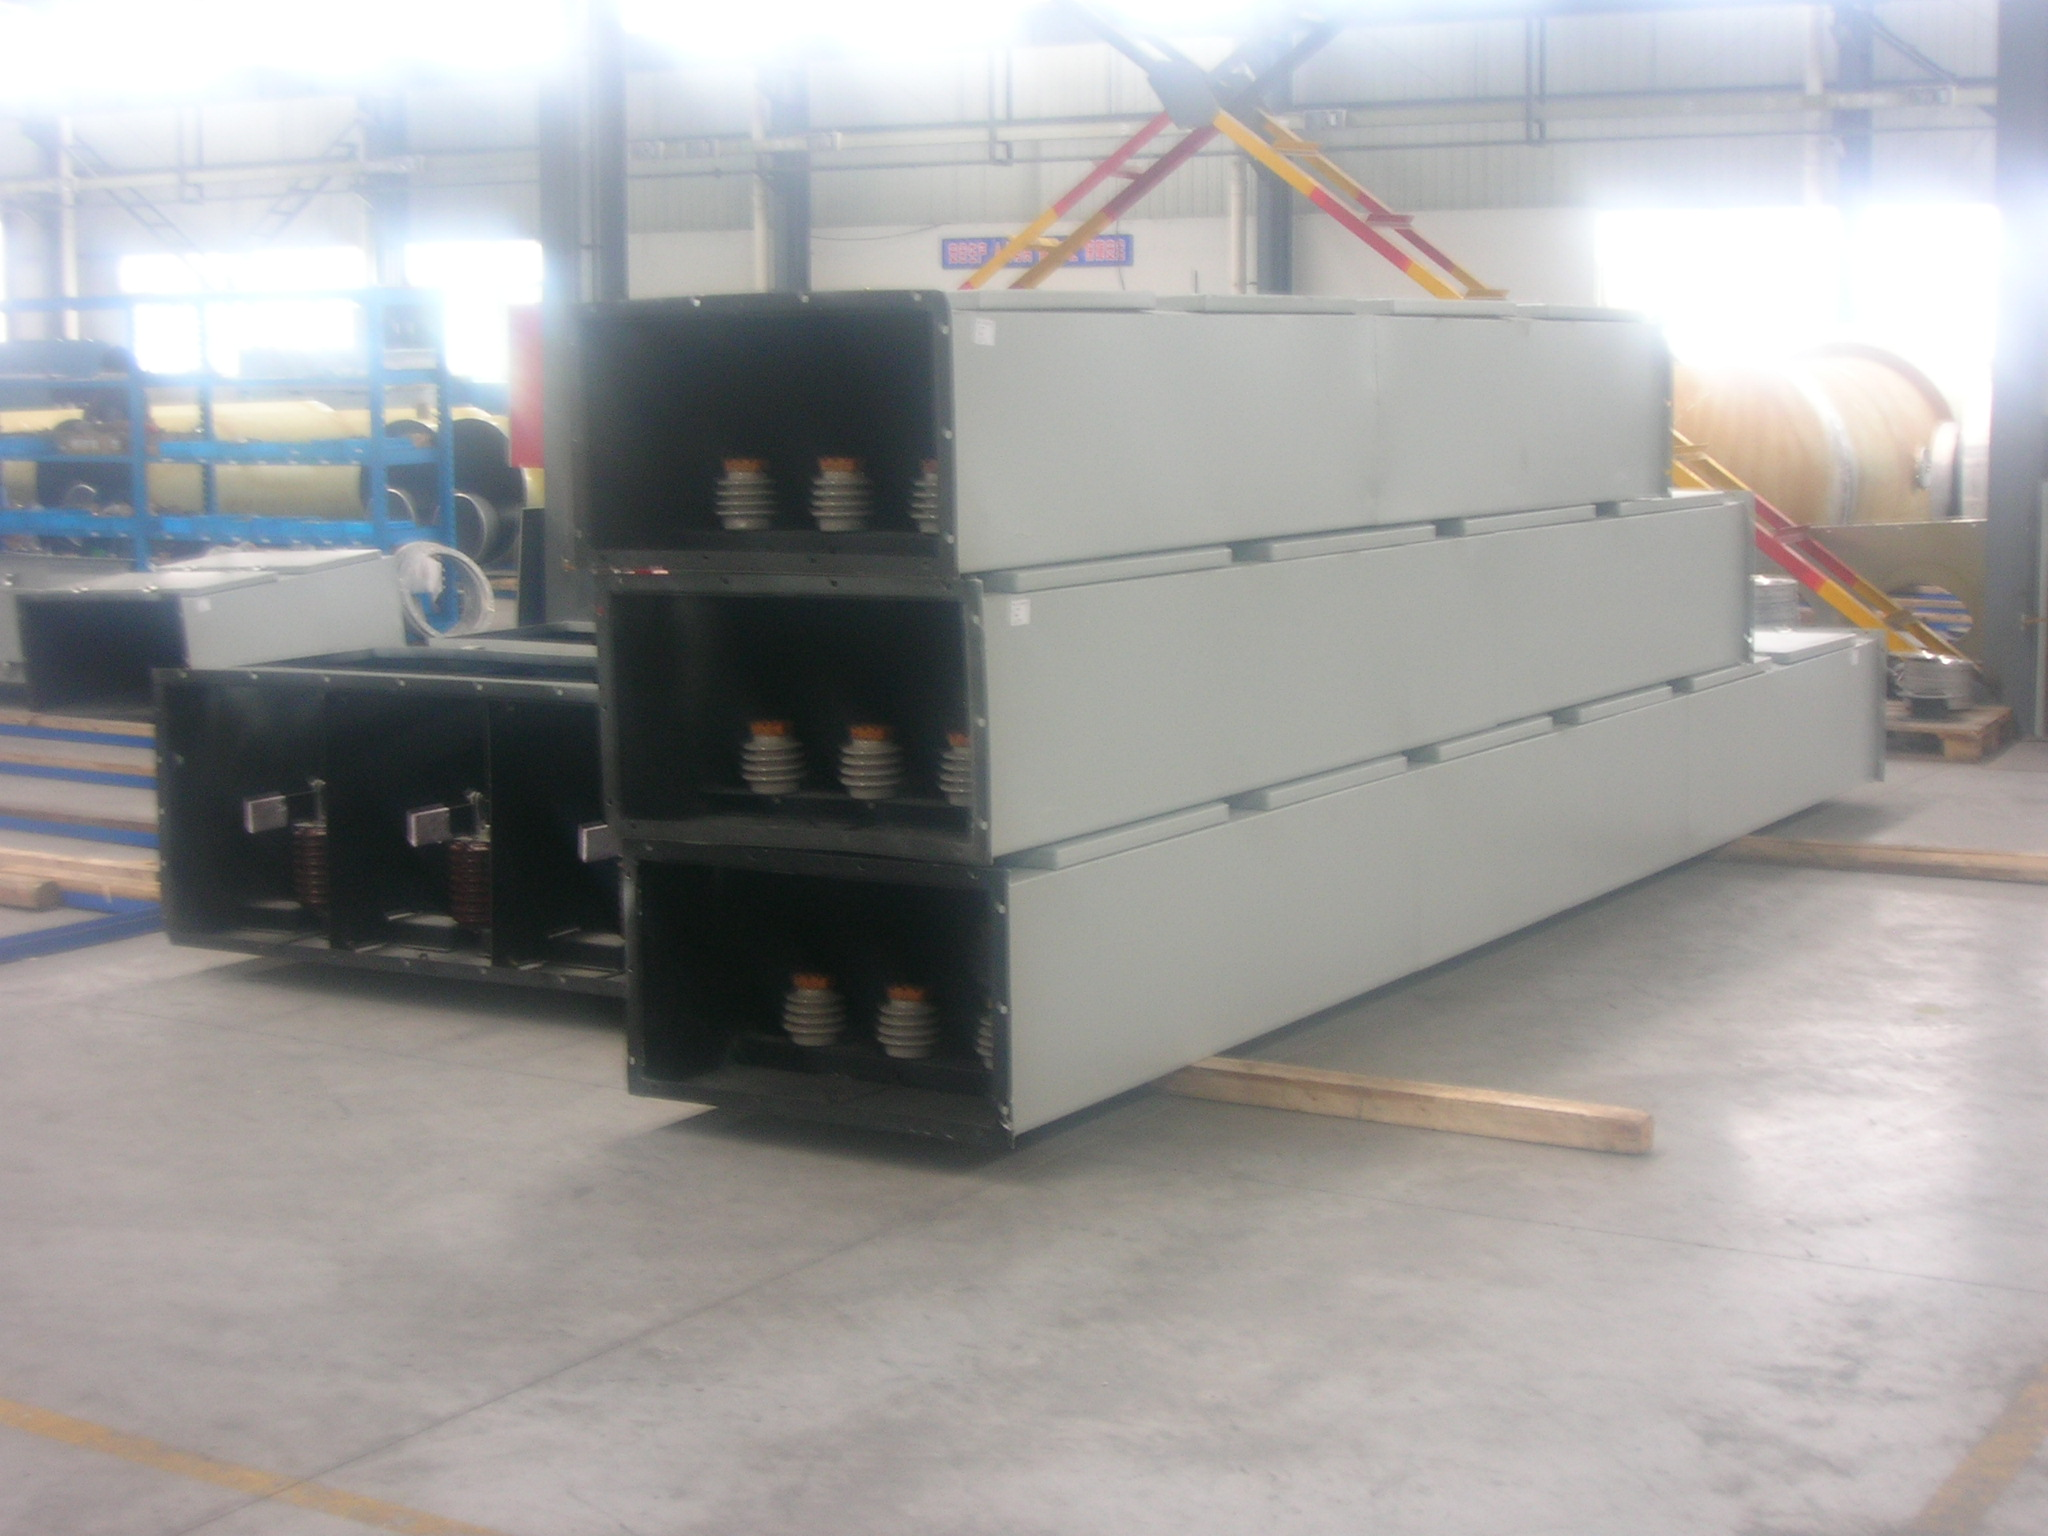 Non Segregated Phase Bus Nspb And Segregated Phase Bus Spb Duct